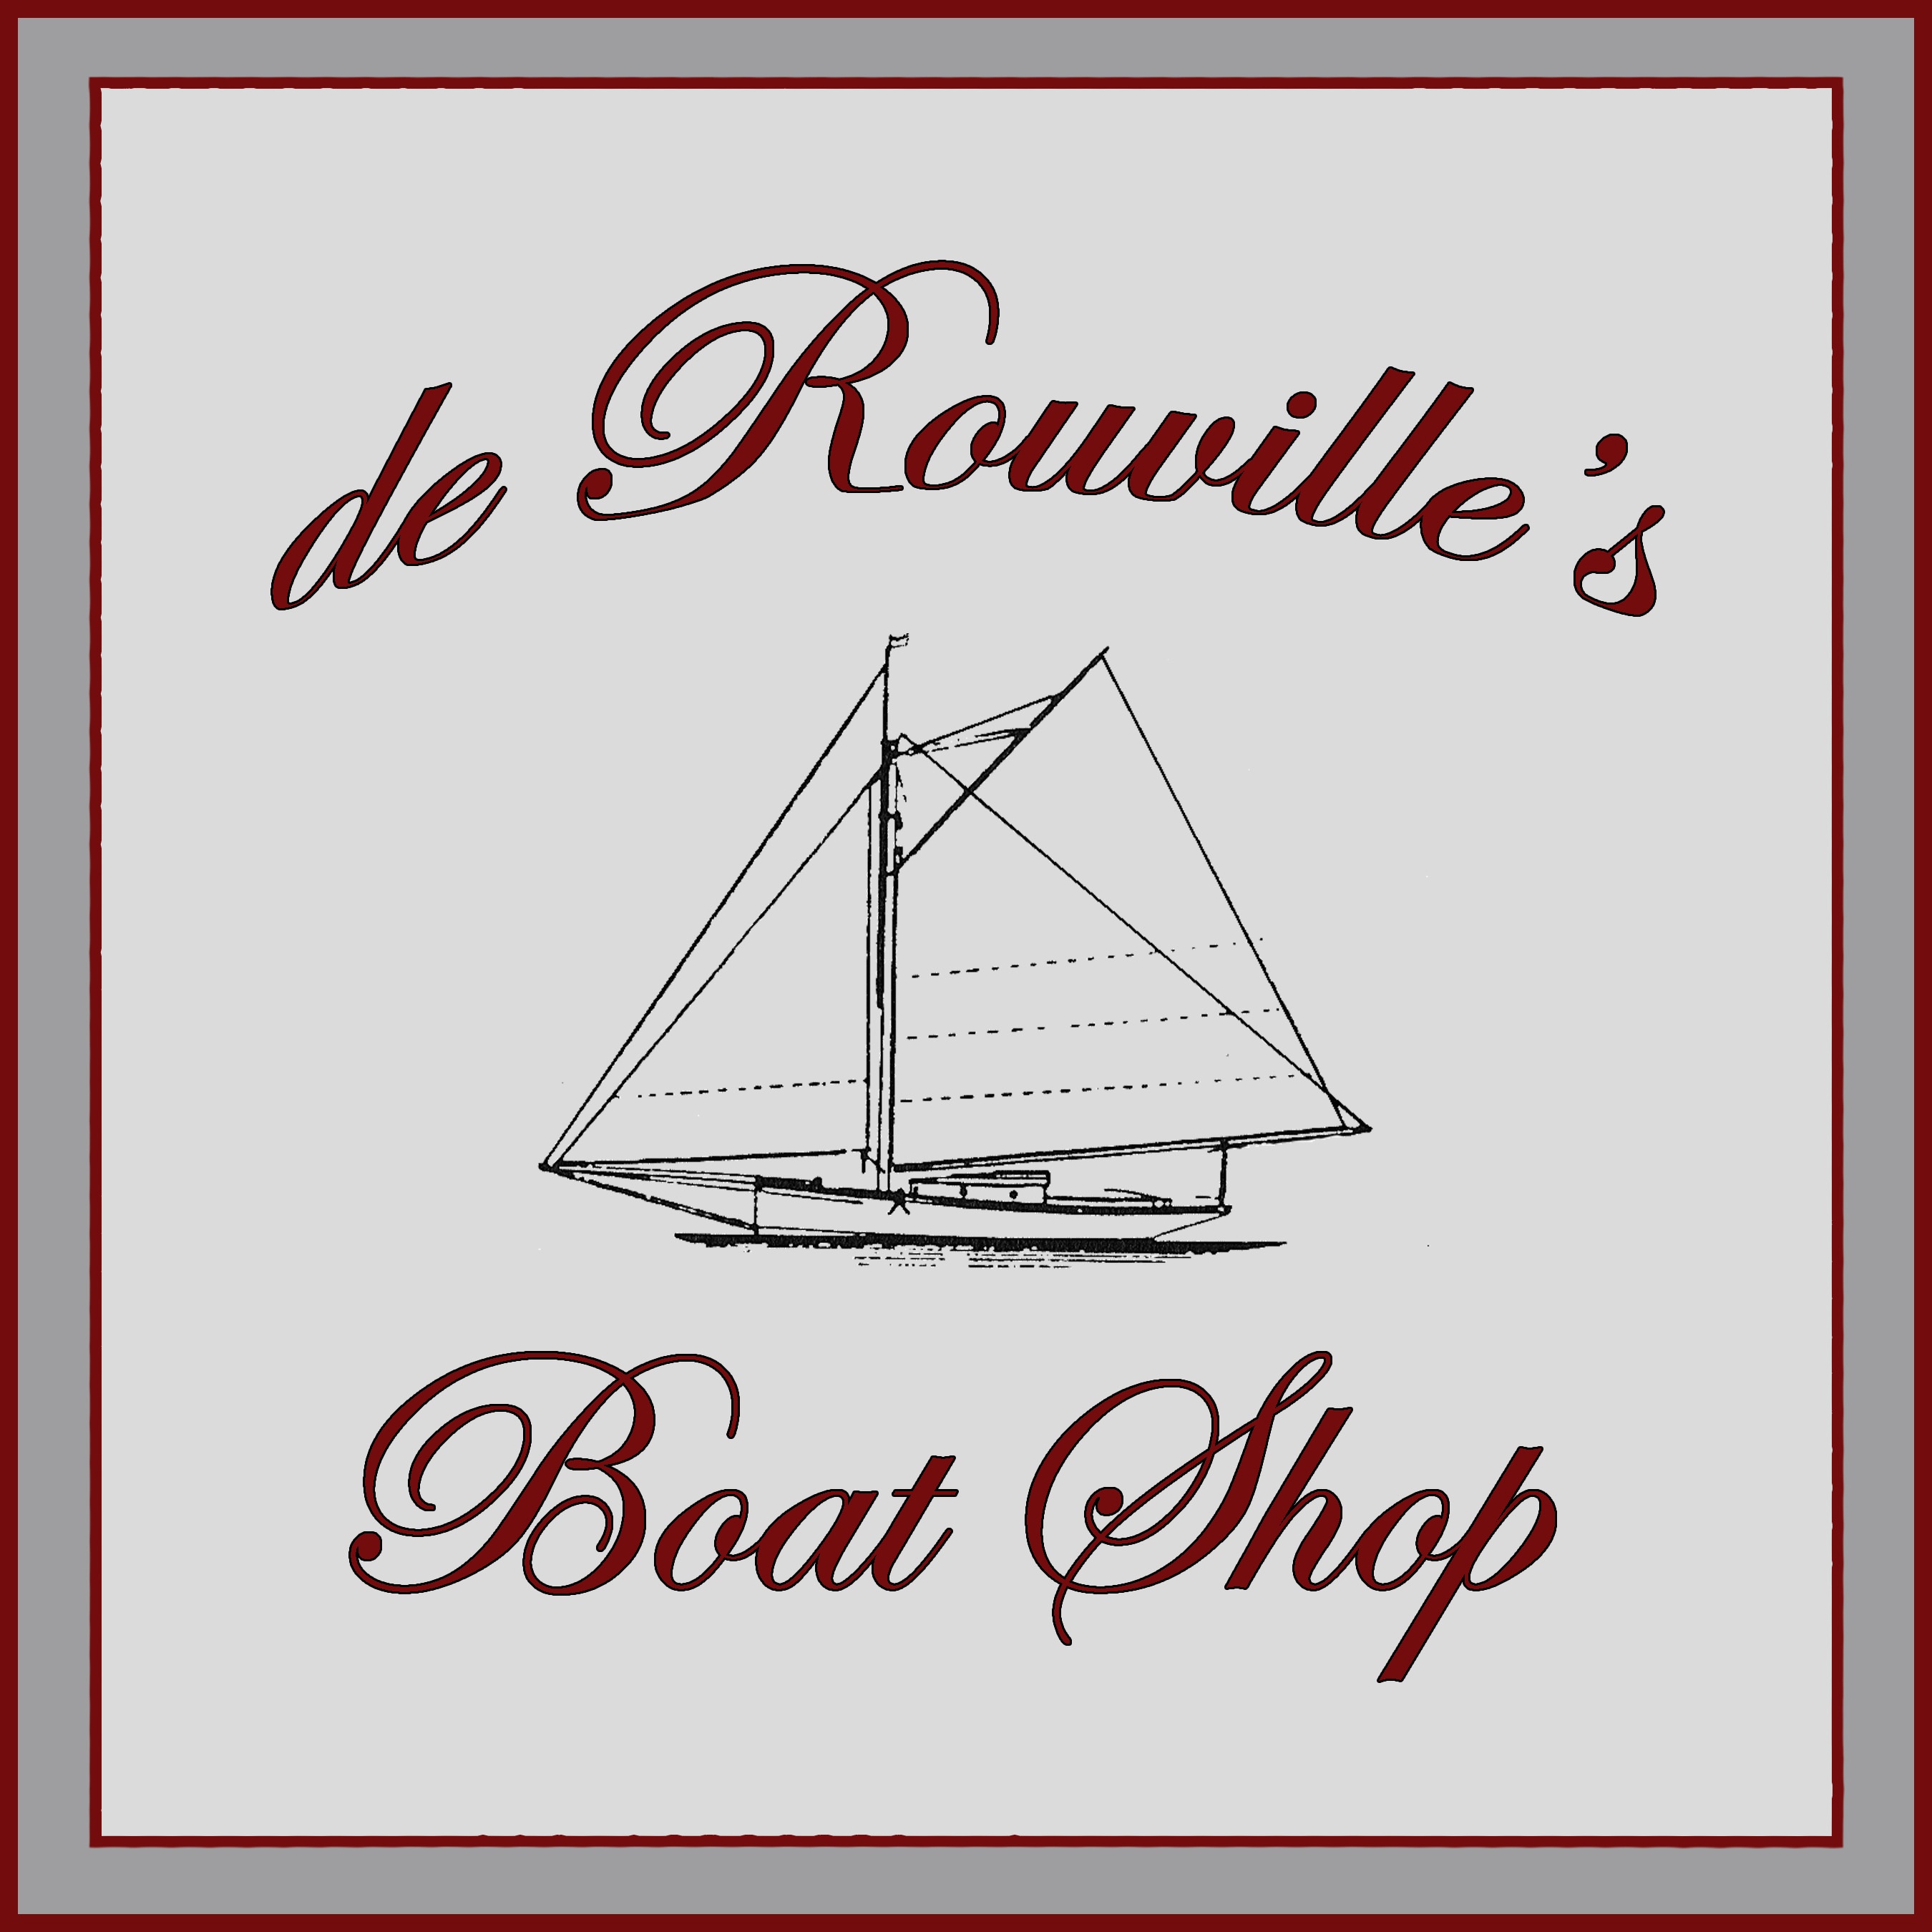 Click here for de Rouville's Boat Shop!